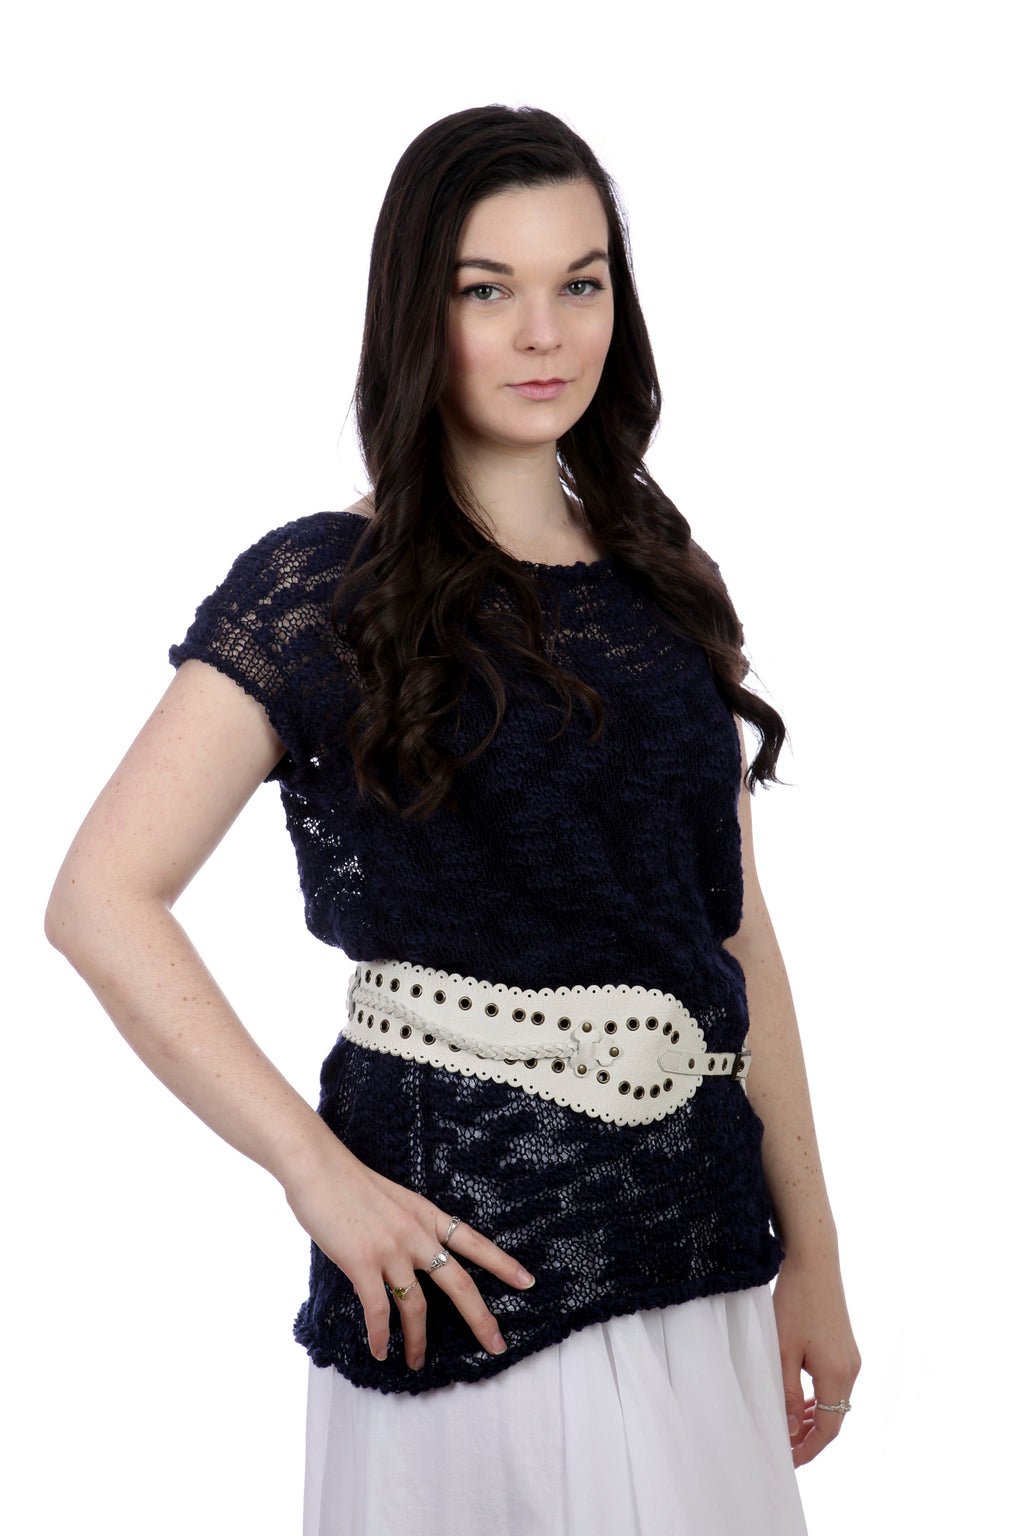 SHORT SLEEVES SUMMER TOP - NAVY